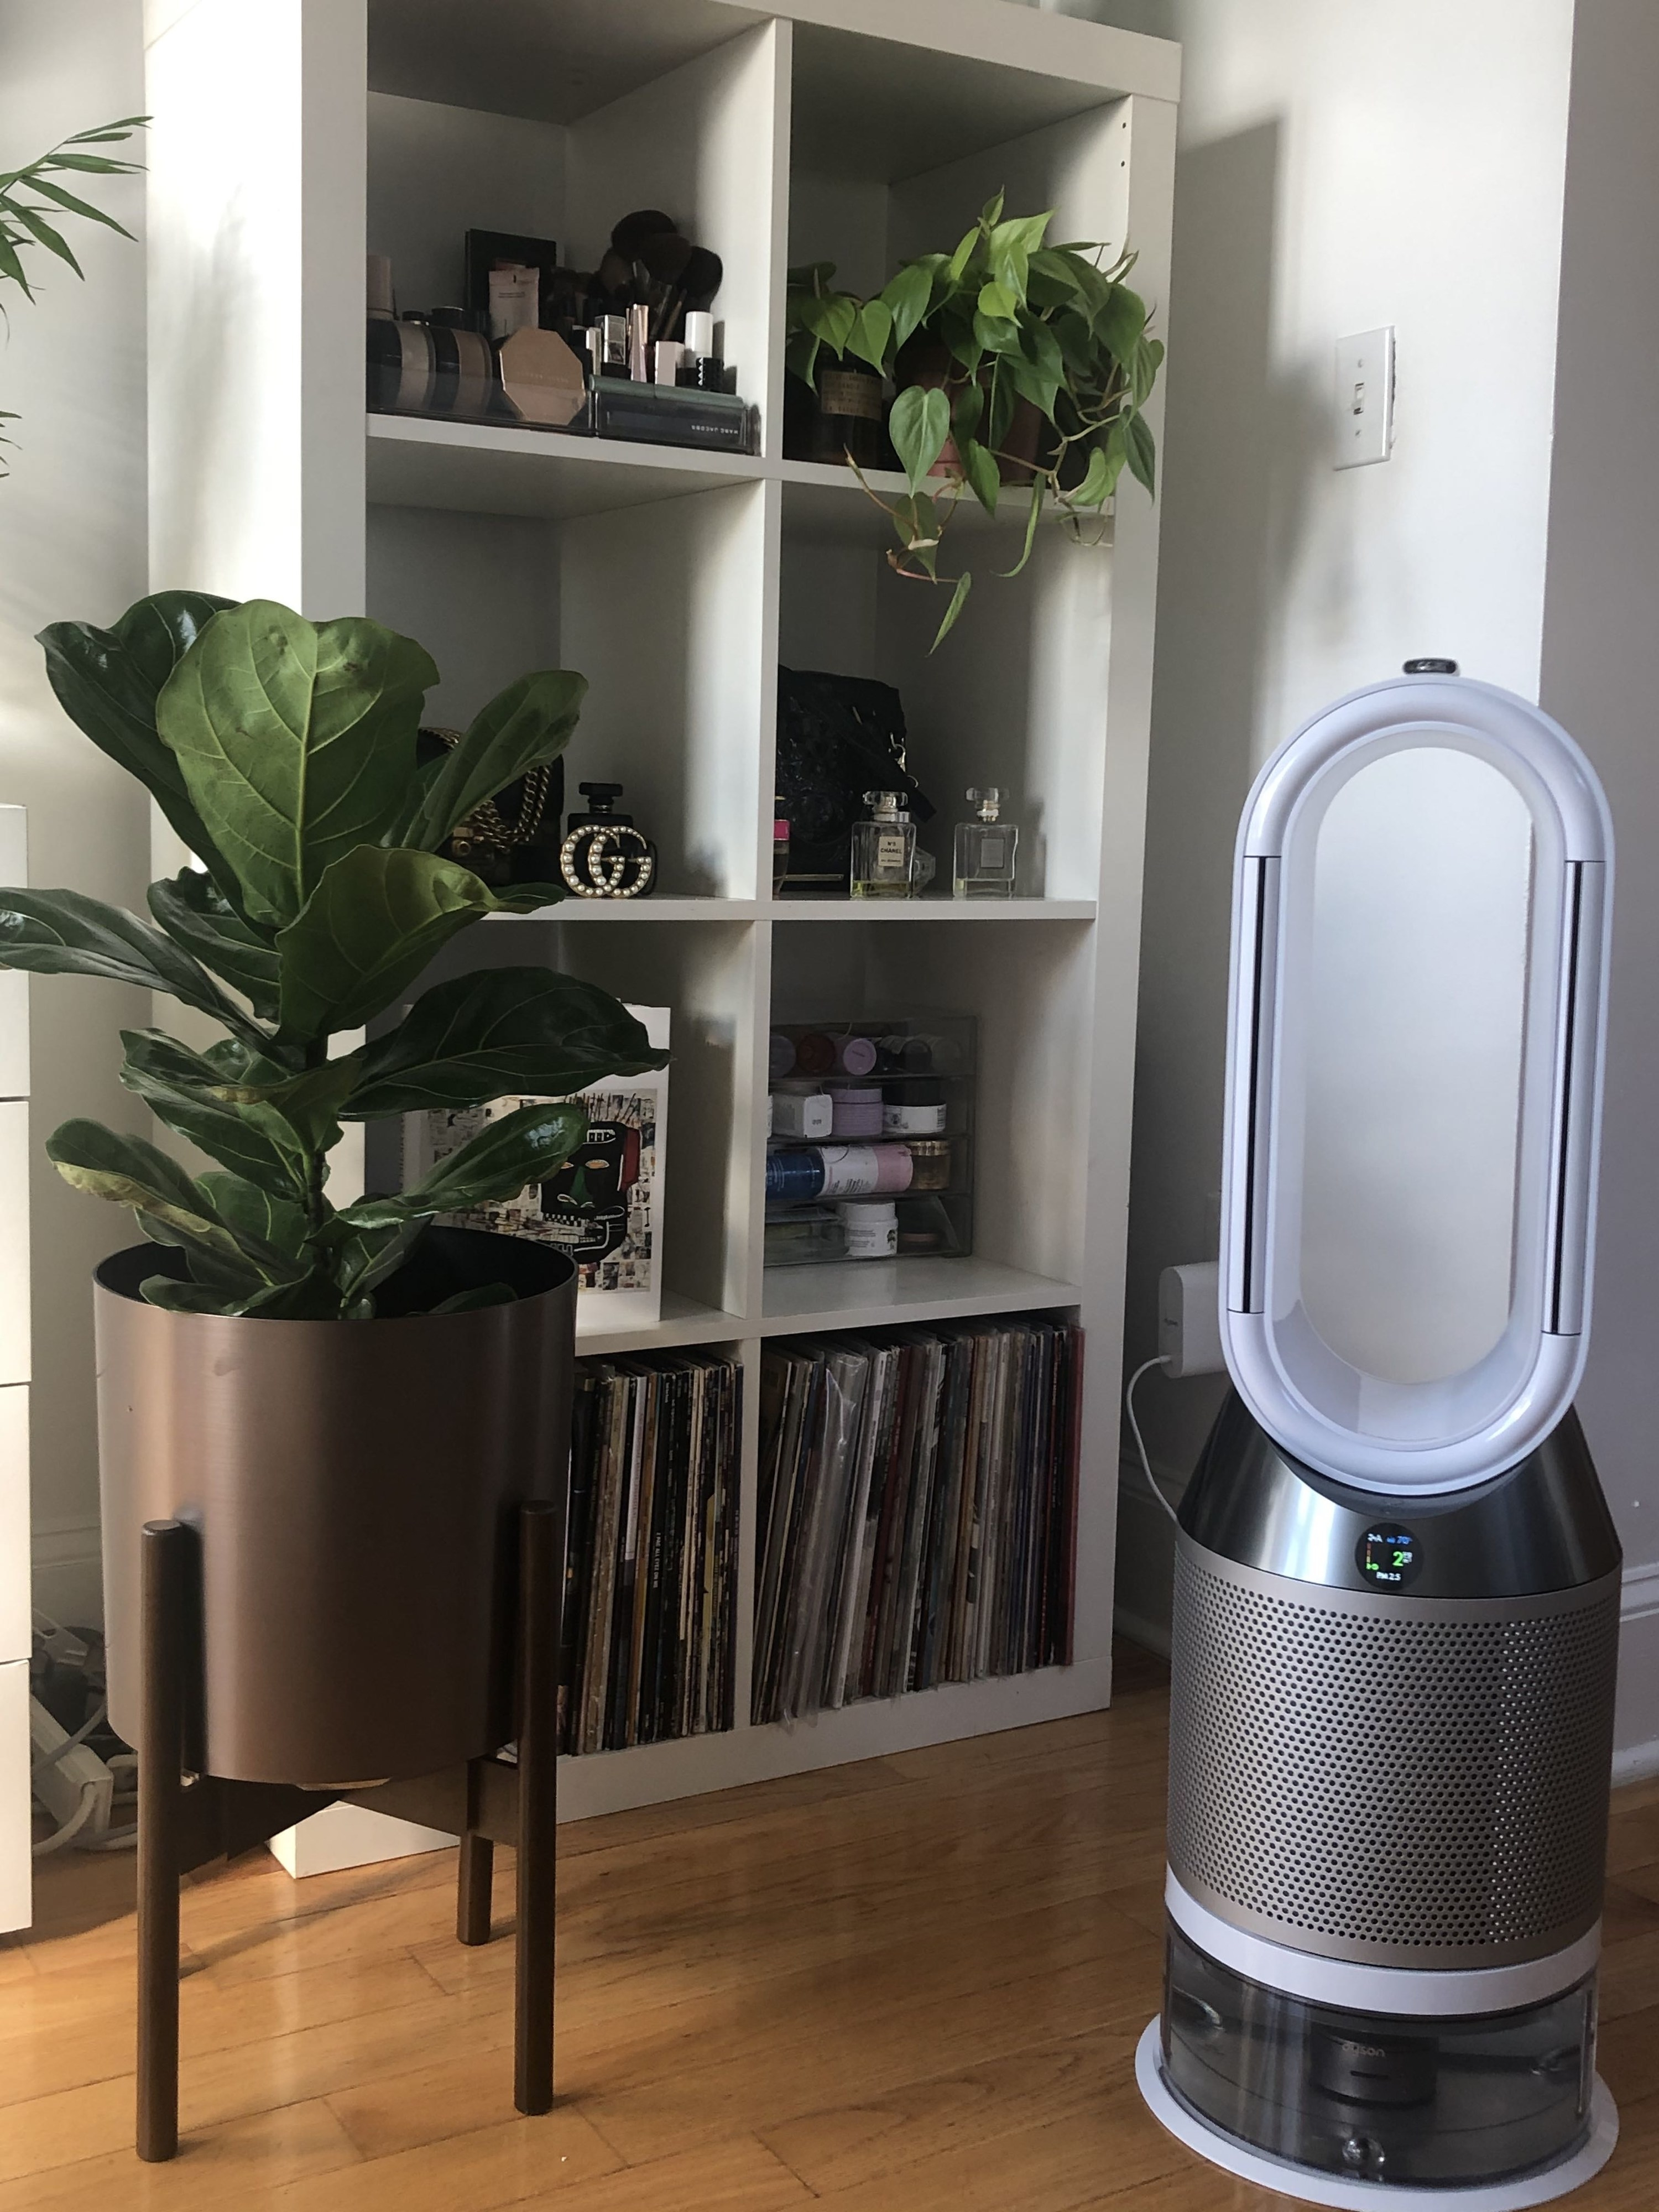 The humidifier, which is about the size of a fiddle leaf fig plant